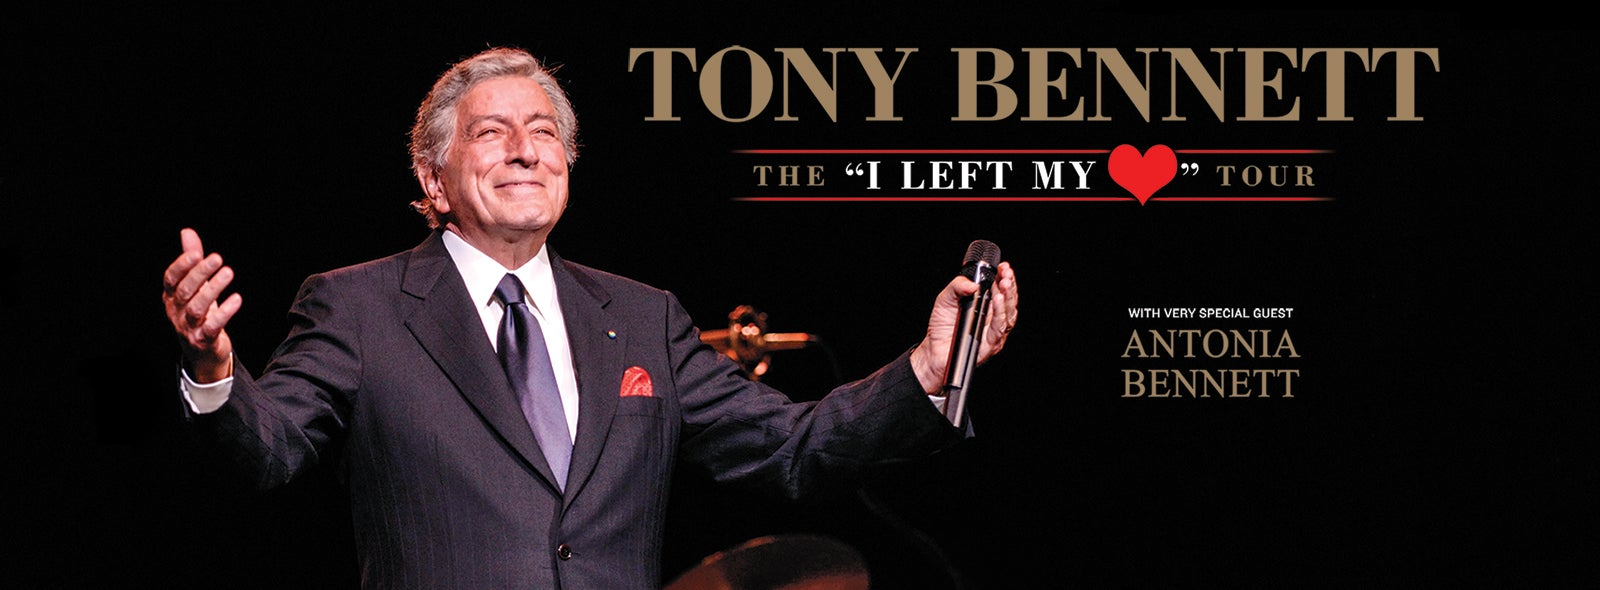 Tony Bennett Christmas Shows 2020 Tony Bennett Coming to DPAC on February 9, 2020 | DPAC Official Site